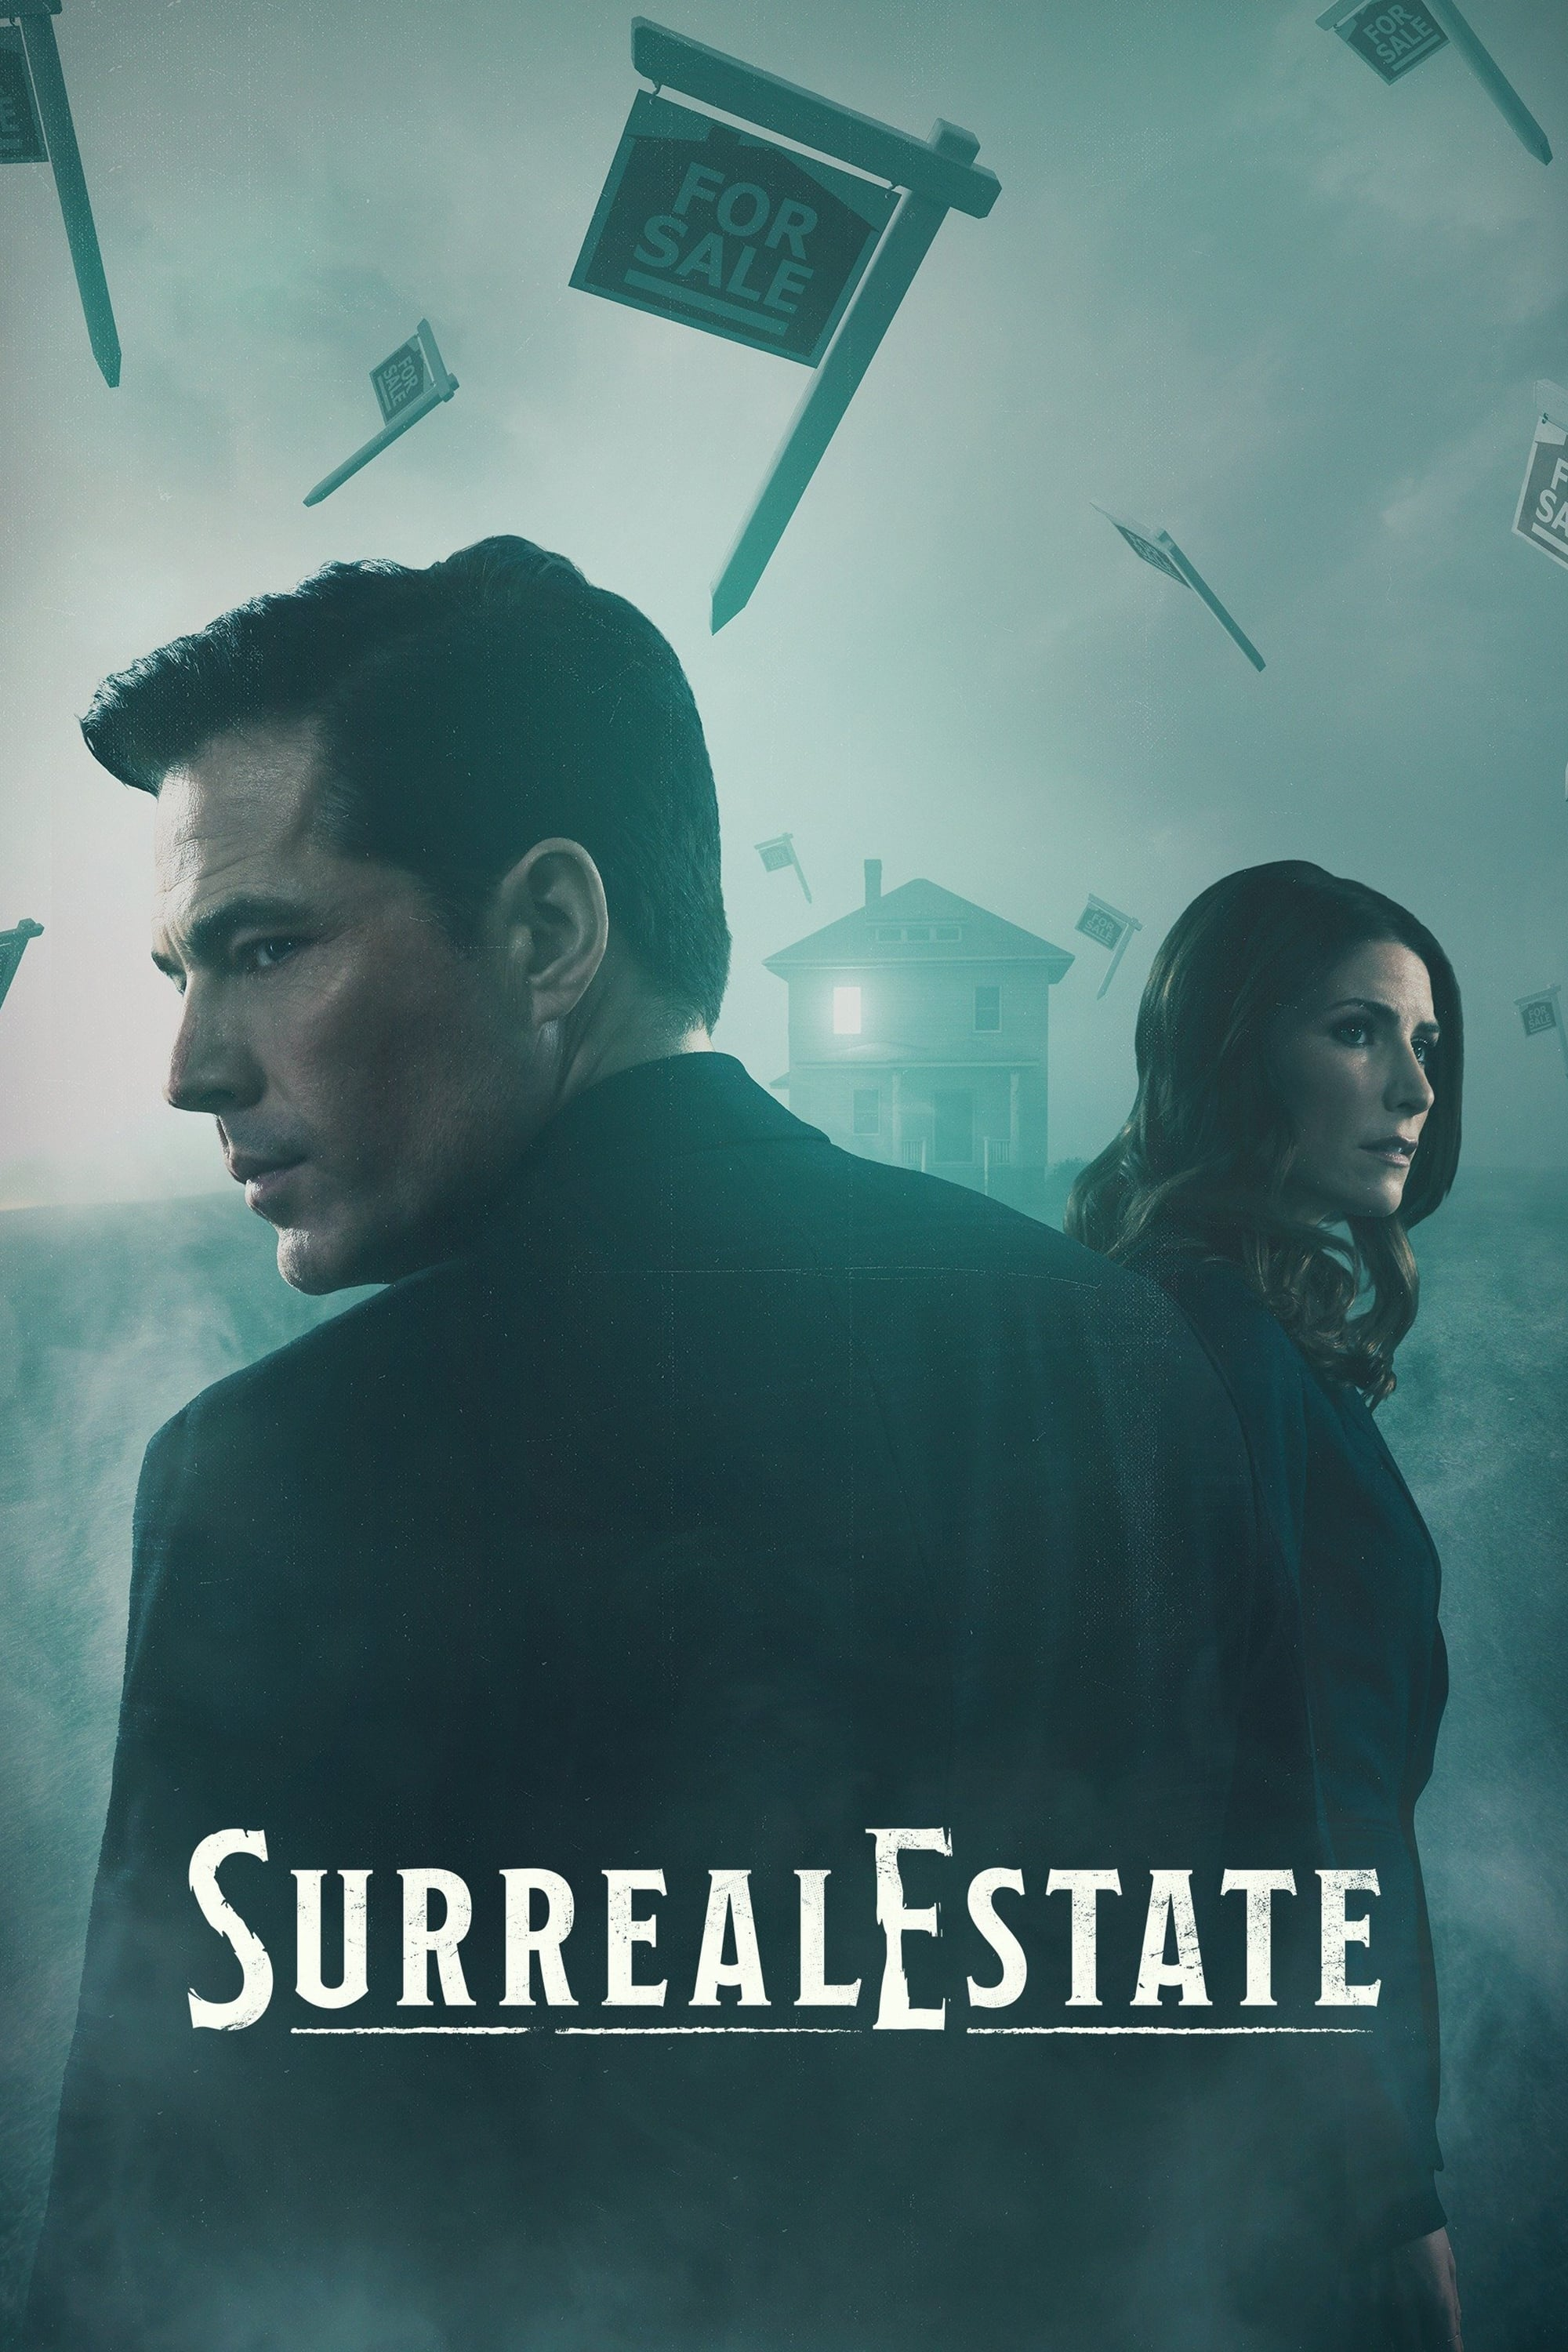 SurrealEstate TV Shows About Haunted